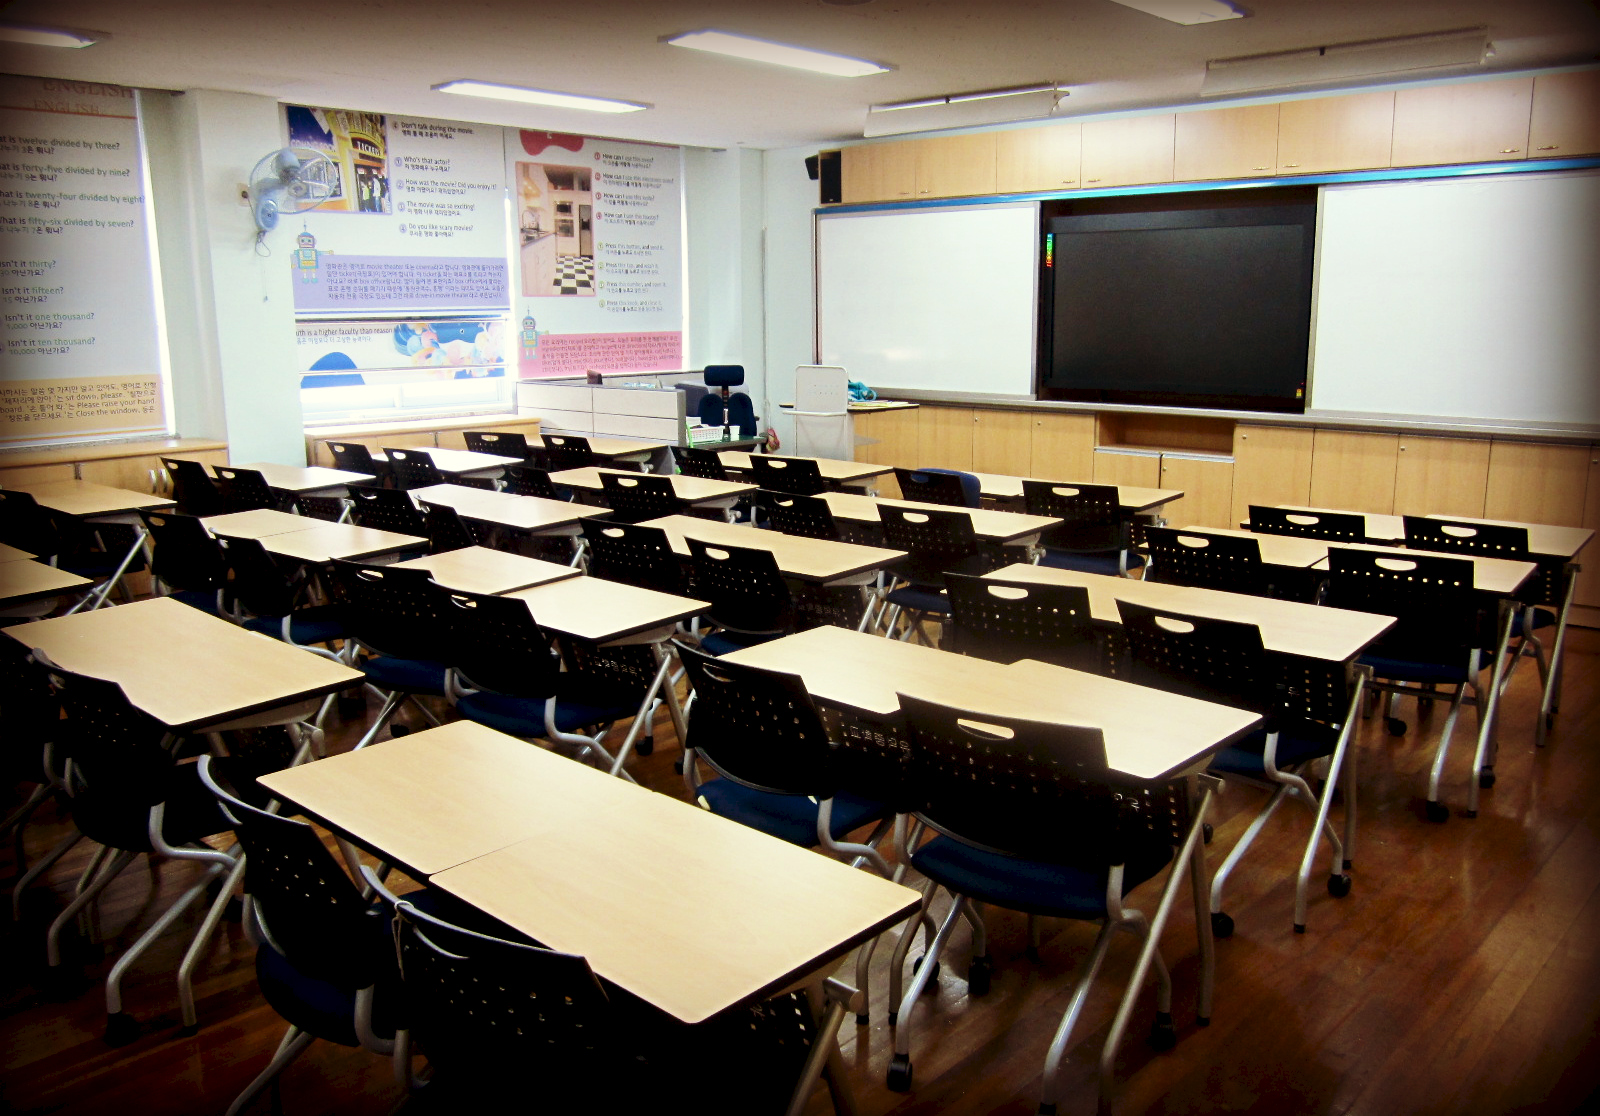 Photo: Cali4beach / Creative Commons   [Image description: A classroom with many  desks facing a whiteboard.]